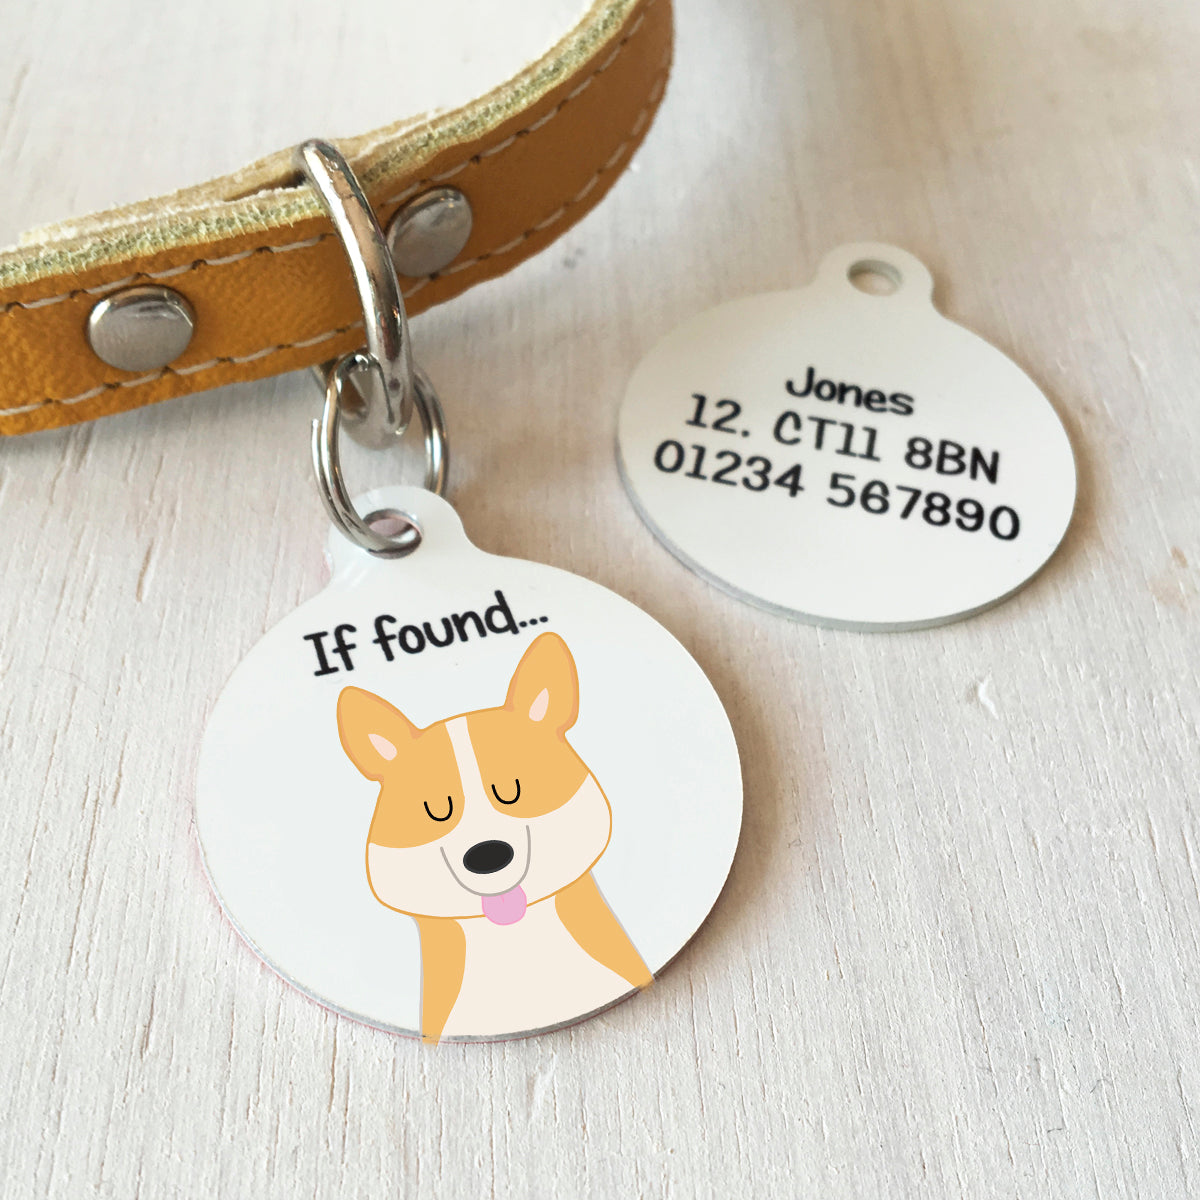 35981470d5ed Corgi Personalised name ID Tag - White - Hoobynoo - Personalised Pet Tags  and Gifts